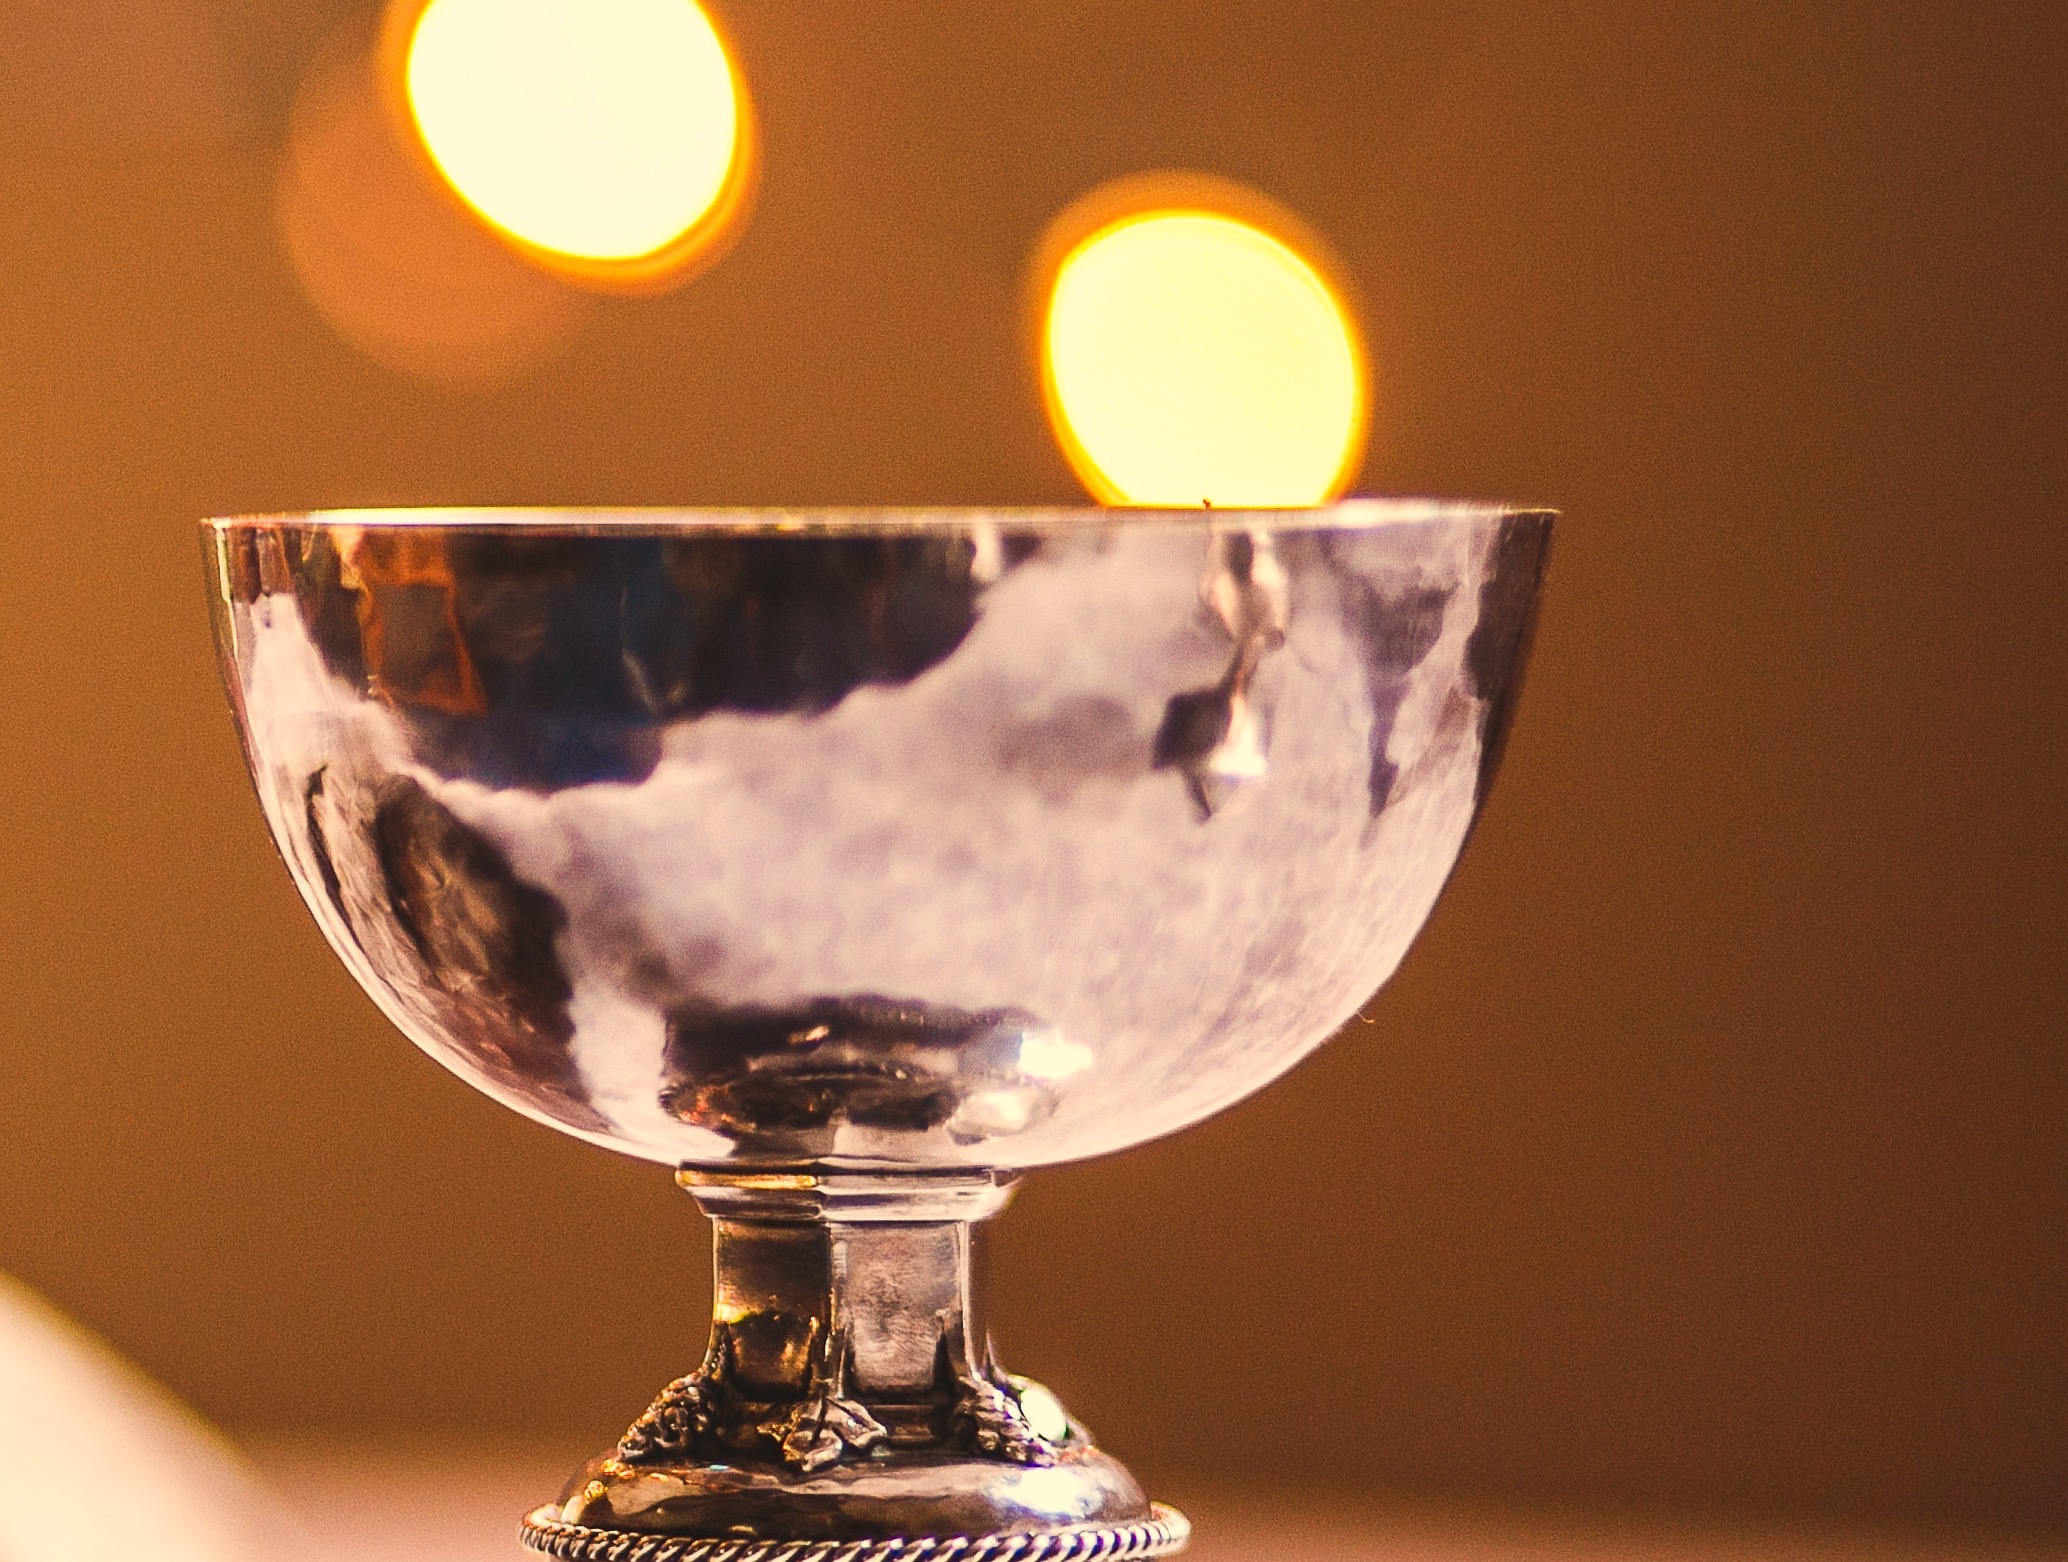 The Chalice is an ancient symbol and instrument of the Divine Feminine. - It is a vessel that holds sacred power and flows blessings and nourishment into the world.The Golden Chalice is your invitation to be held in sacred space as you transform from a light worker into a light leader, a shining beacon for others.